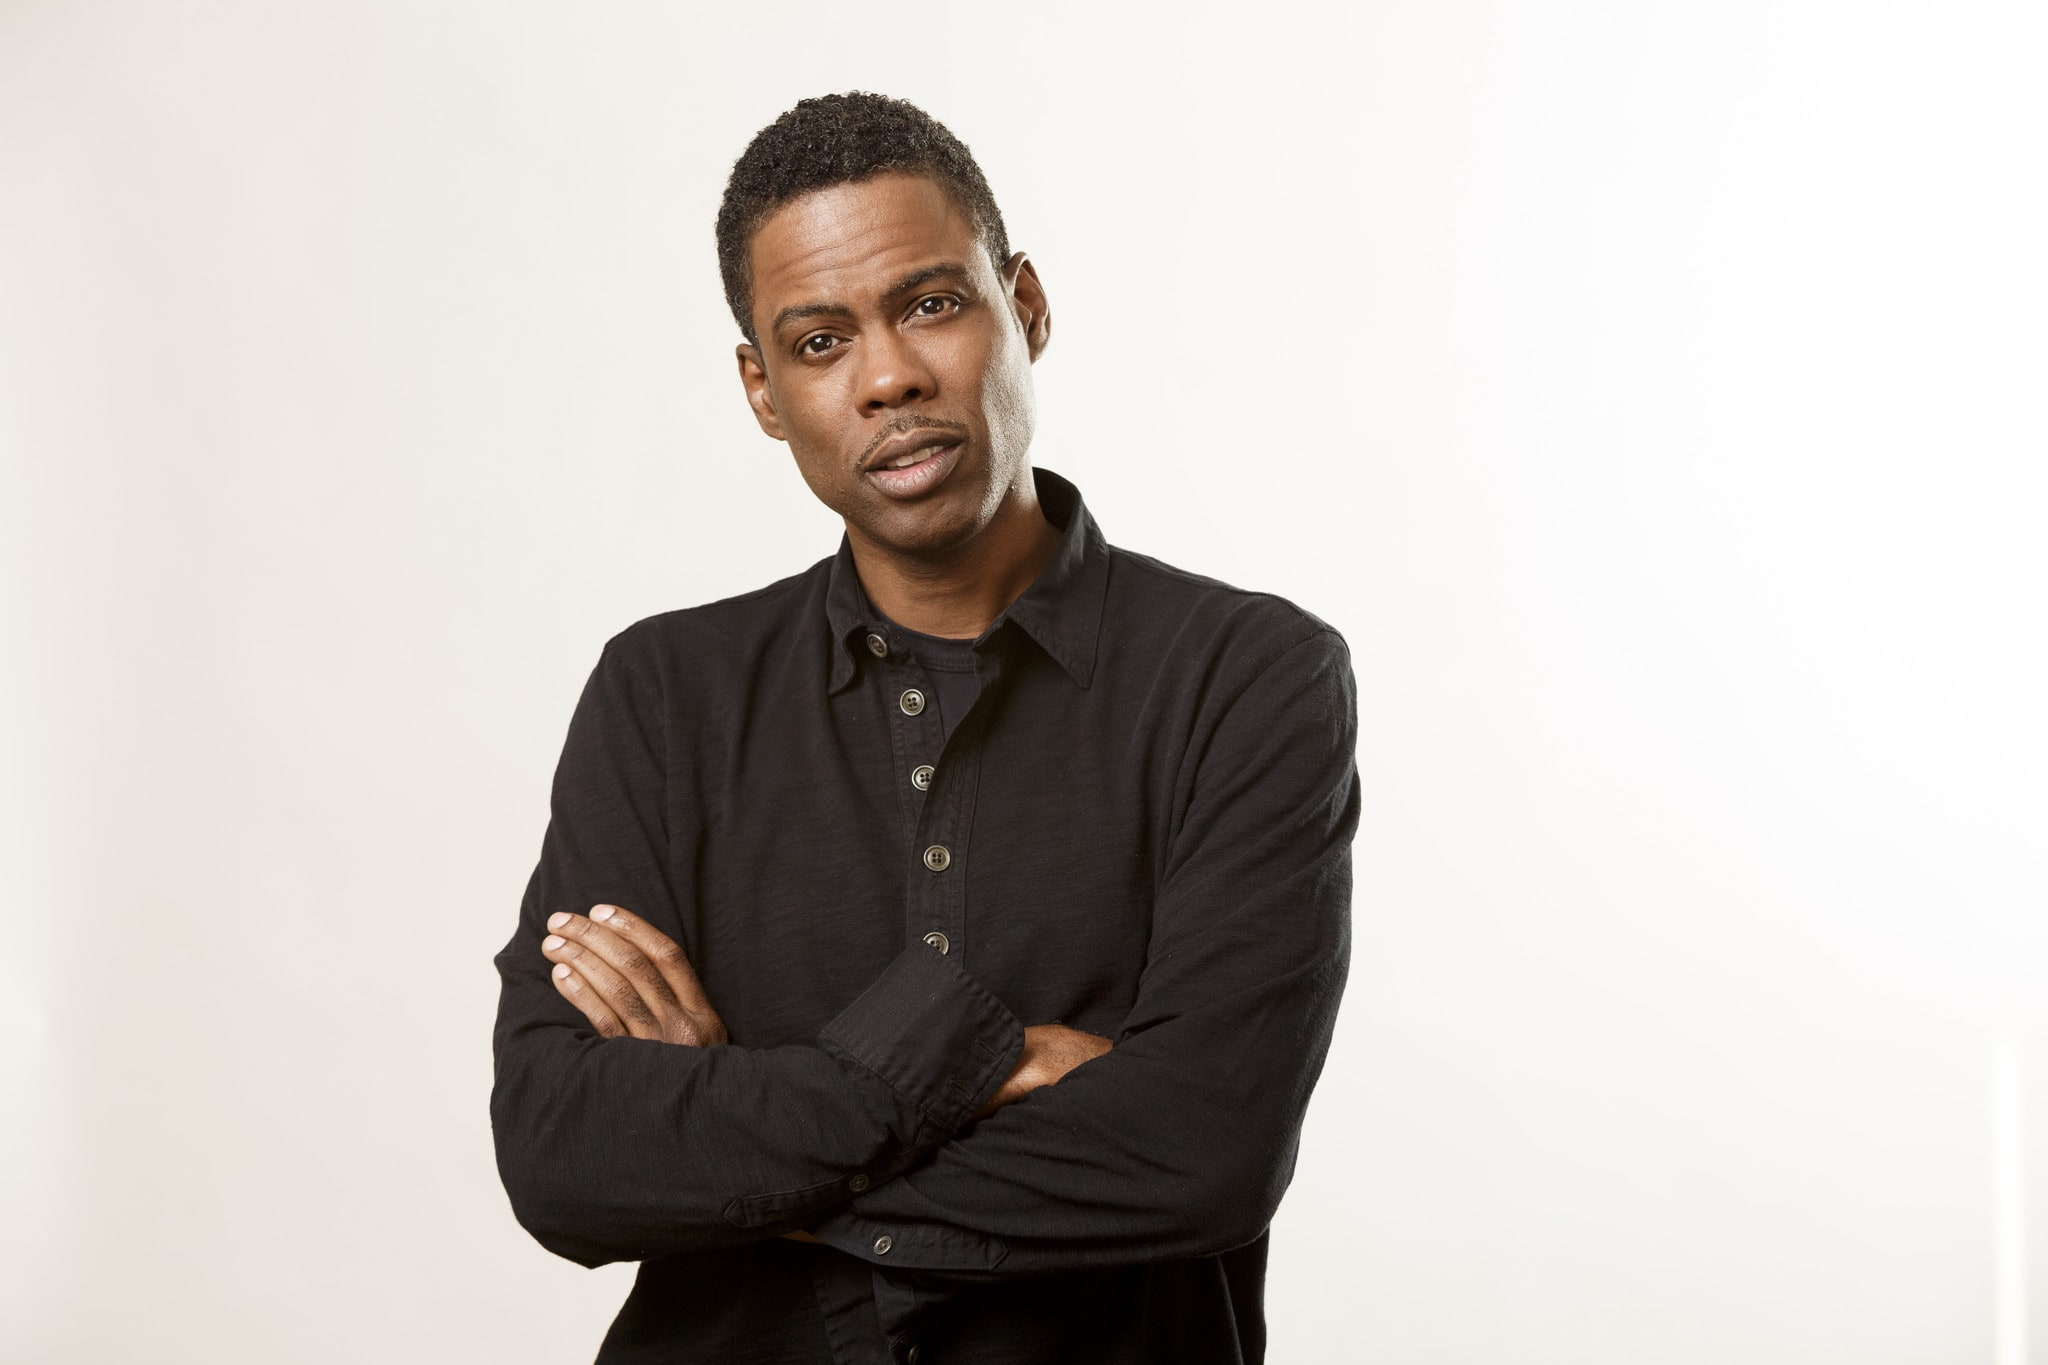 Chris Rock Backgrounds